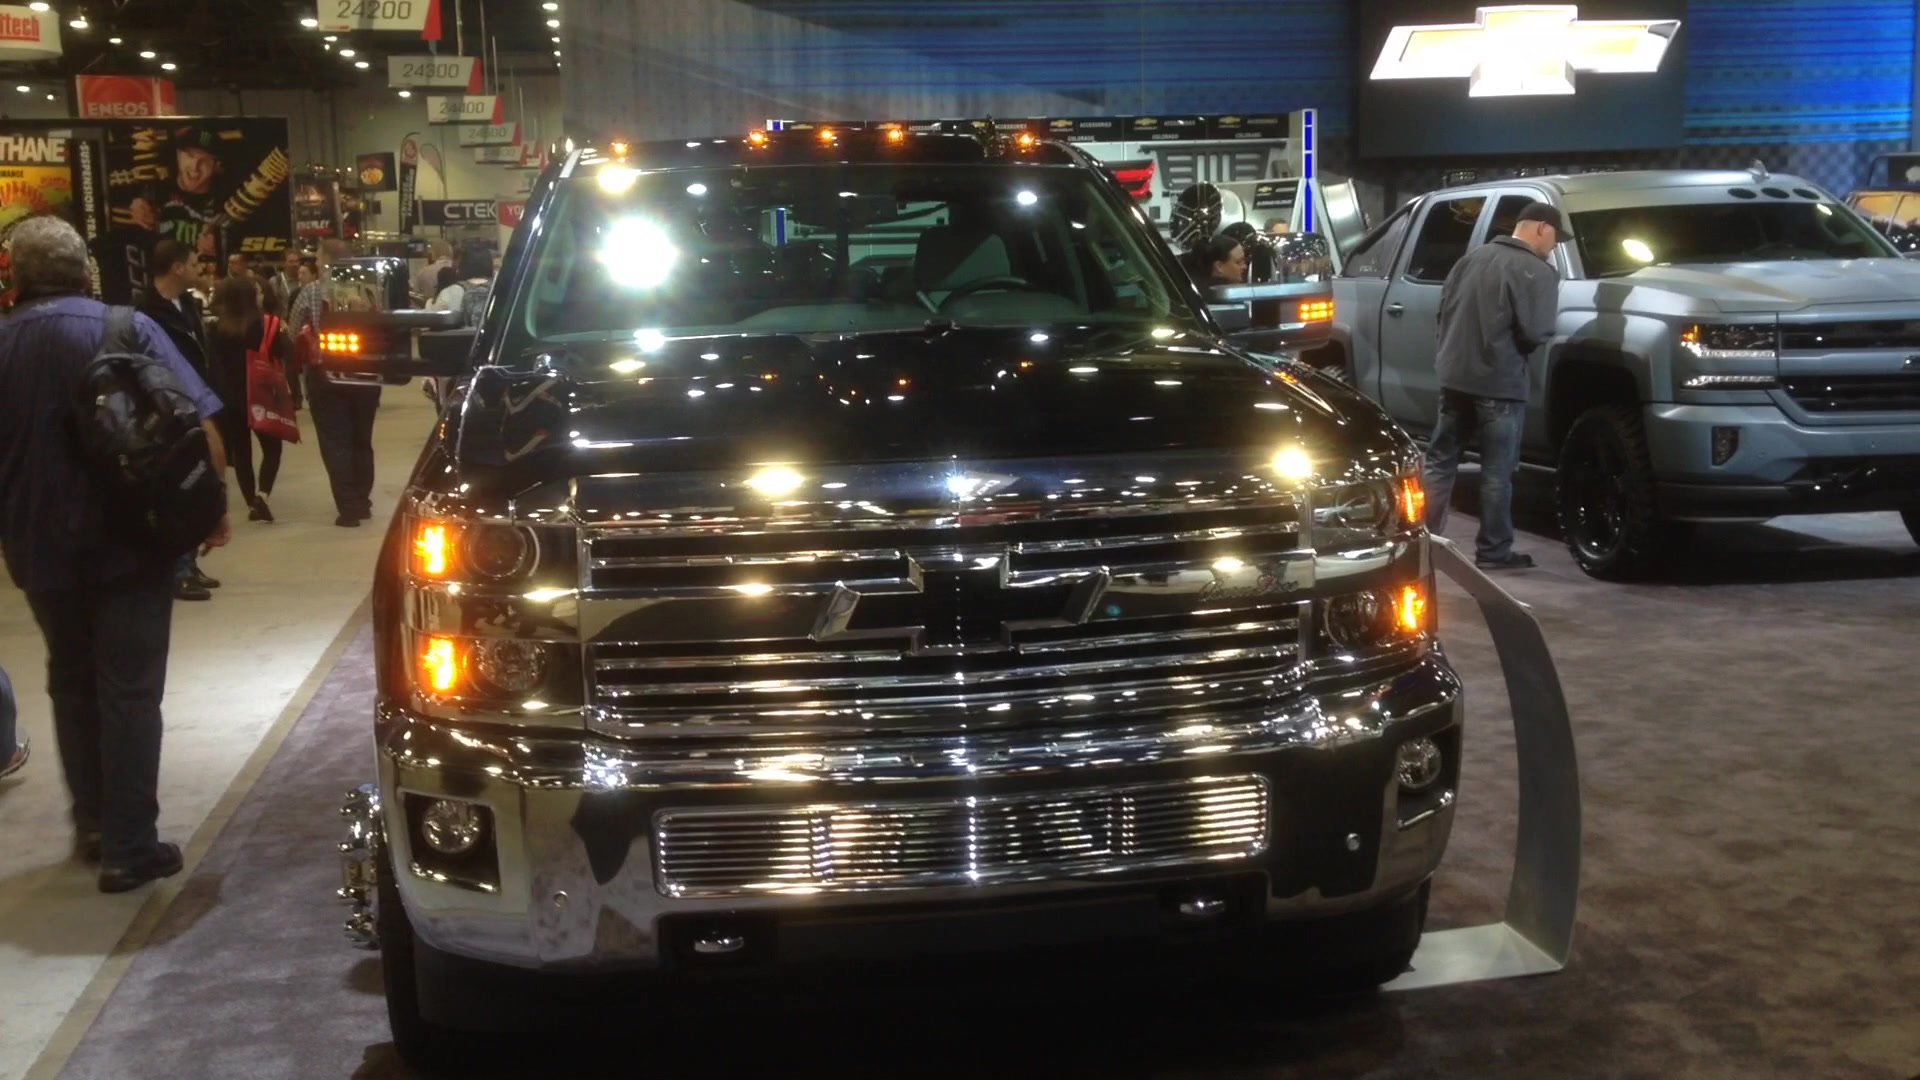 Chevy Silverado 3500 Kid Rock Concept SEMA | Autoblog Short Cuts